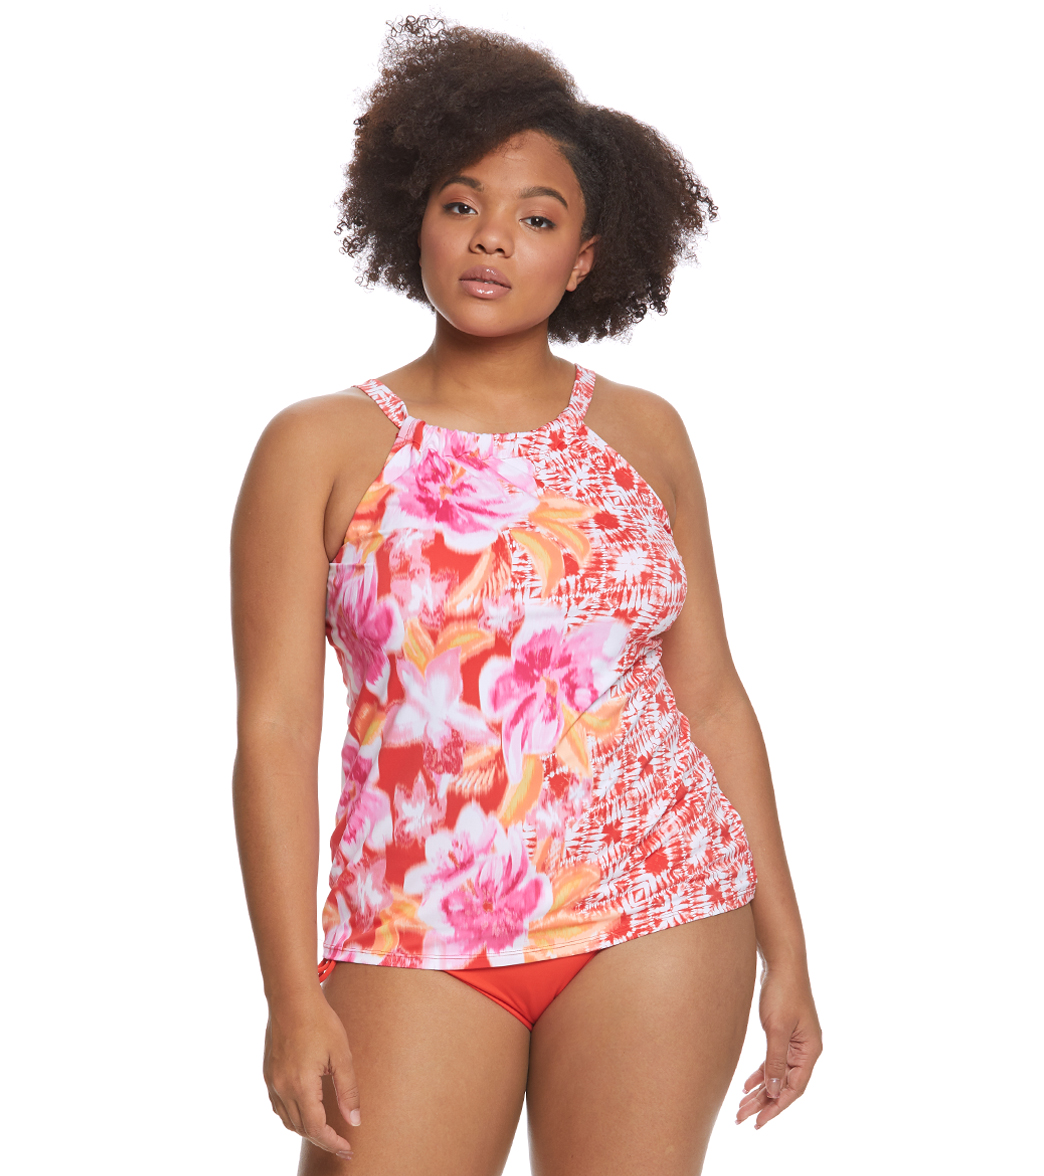 3c31abf1a56aa Beach House Plus Size Bungalow Bay Border Blair Tankini Top at SwimOutlet. com - Free Shipping